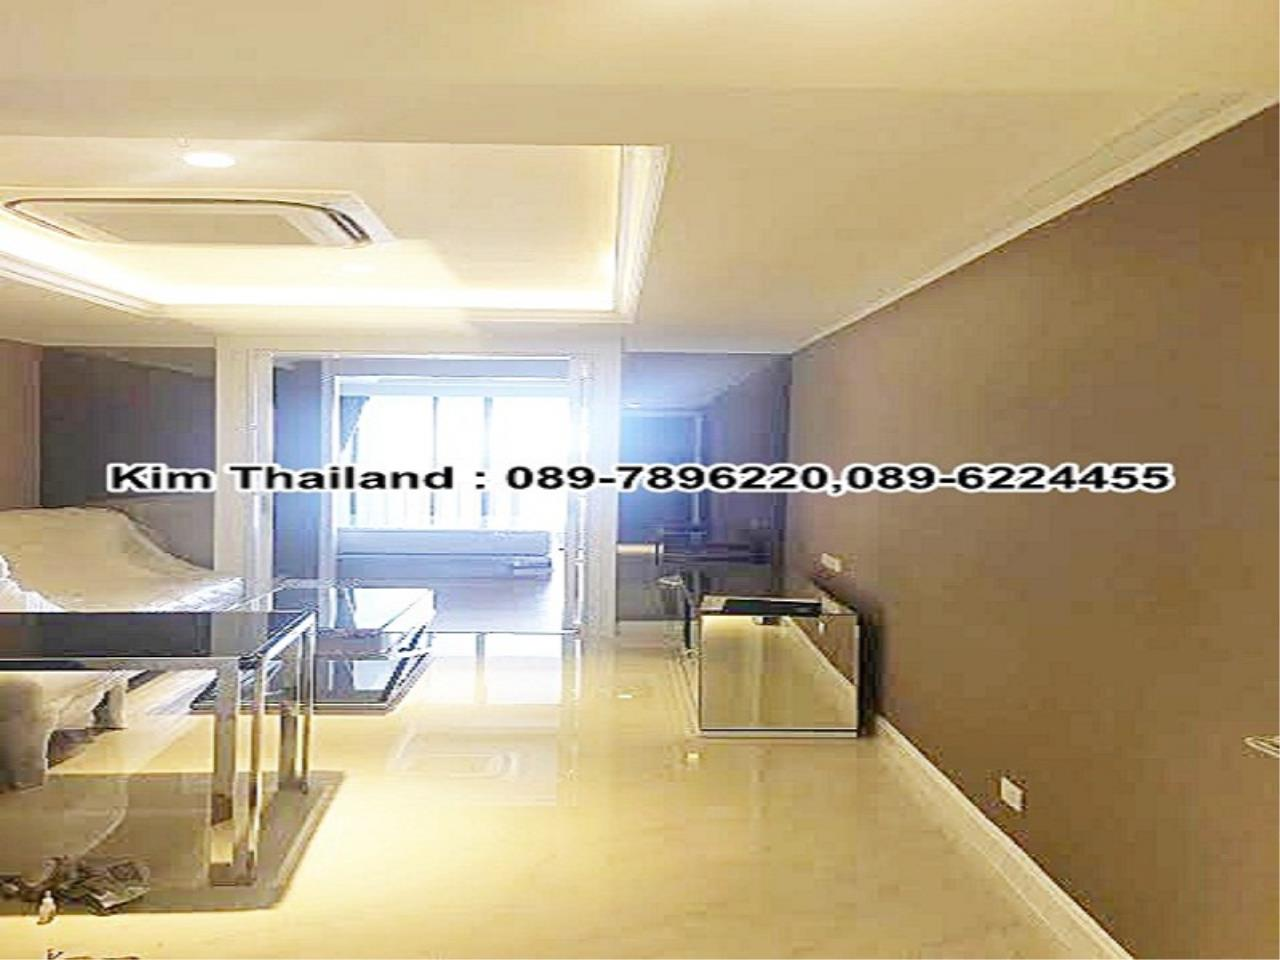 BKKcondorental Agency's For sale,State Tower Condominium., 73 sqm., 1 bedroom. Price 6 million baht. 6